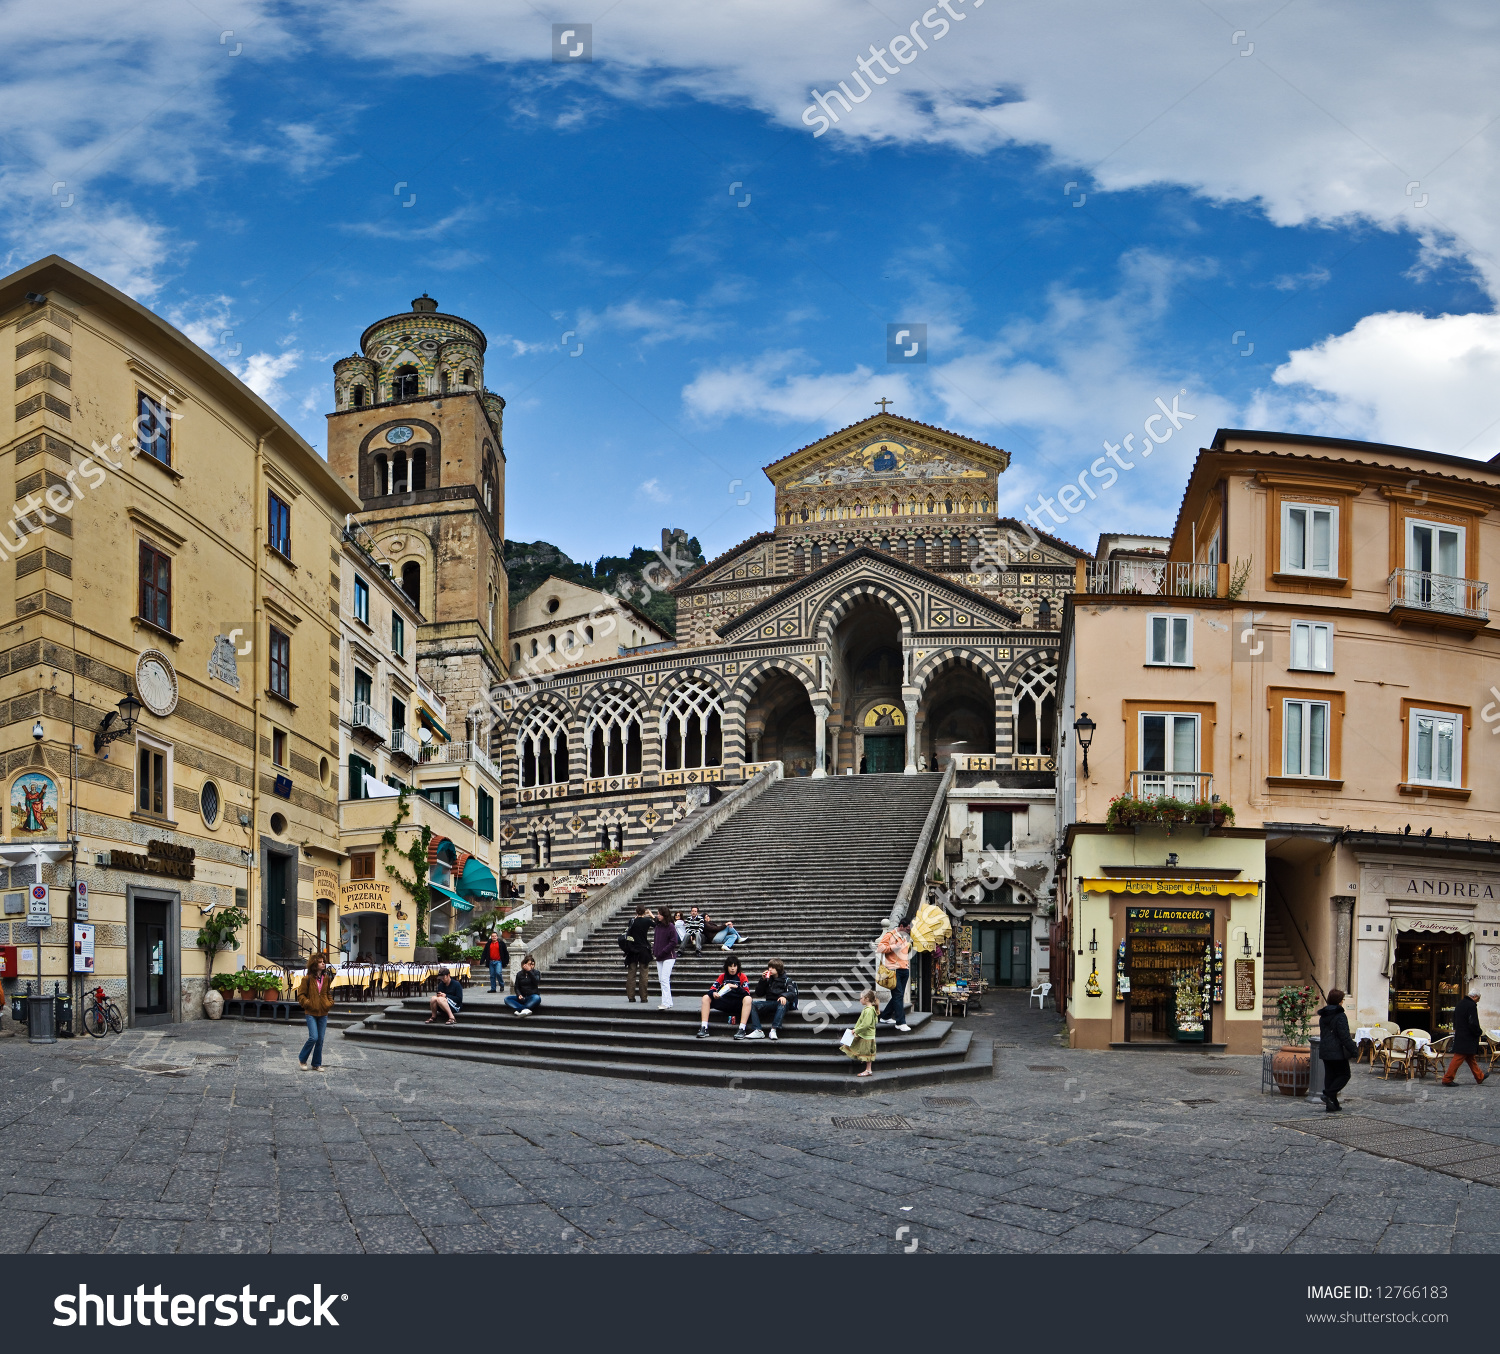 Panoramic View Of St Andrew Cathedral, Amalfi, Italy Stock Photo.